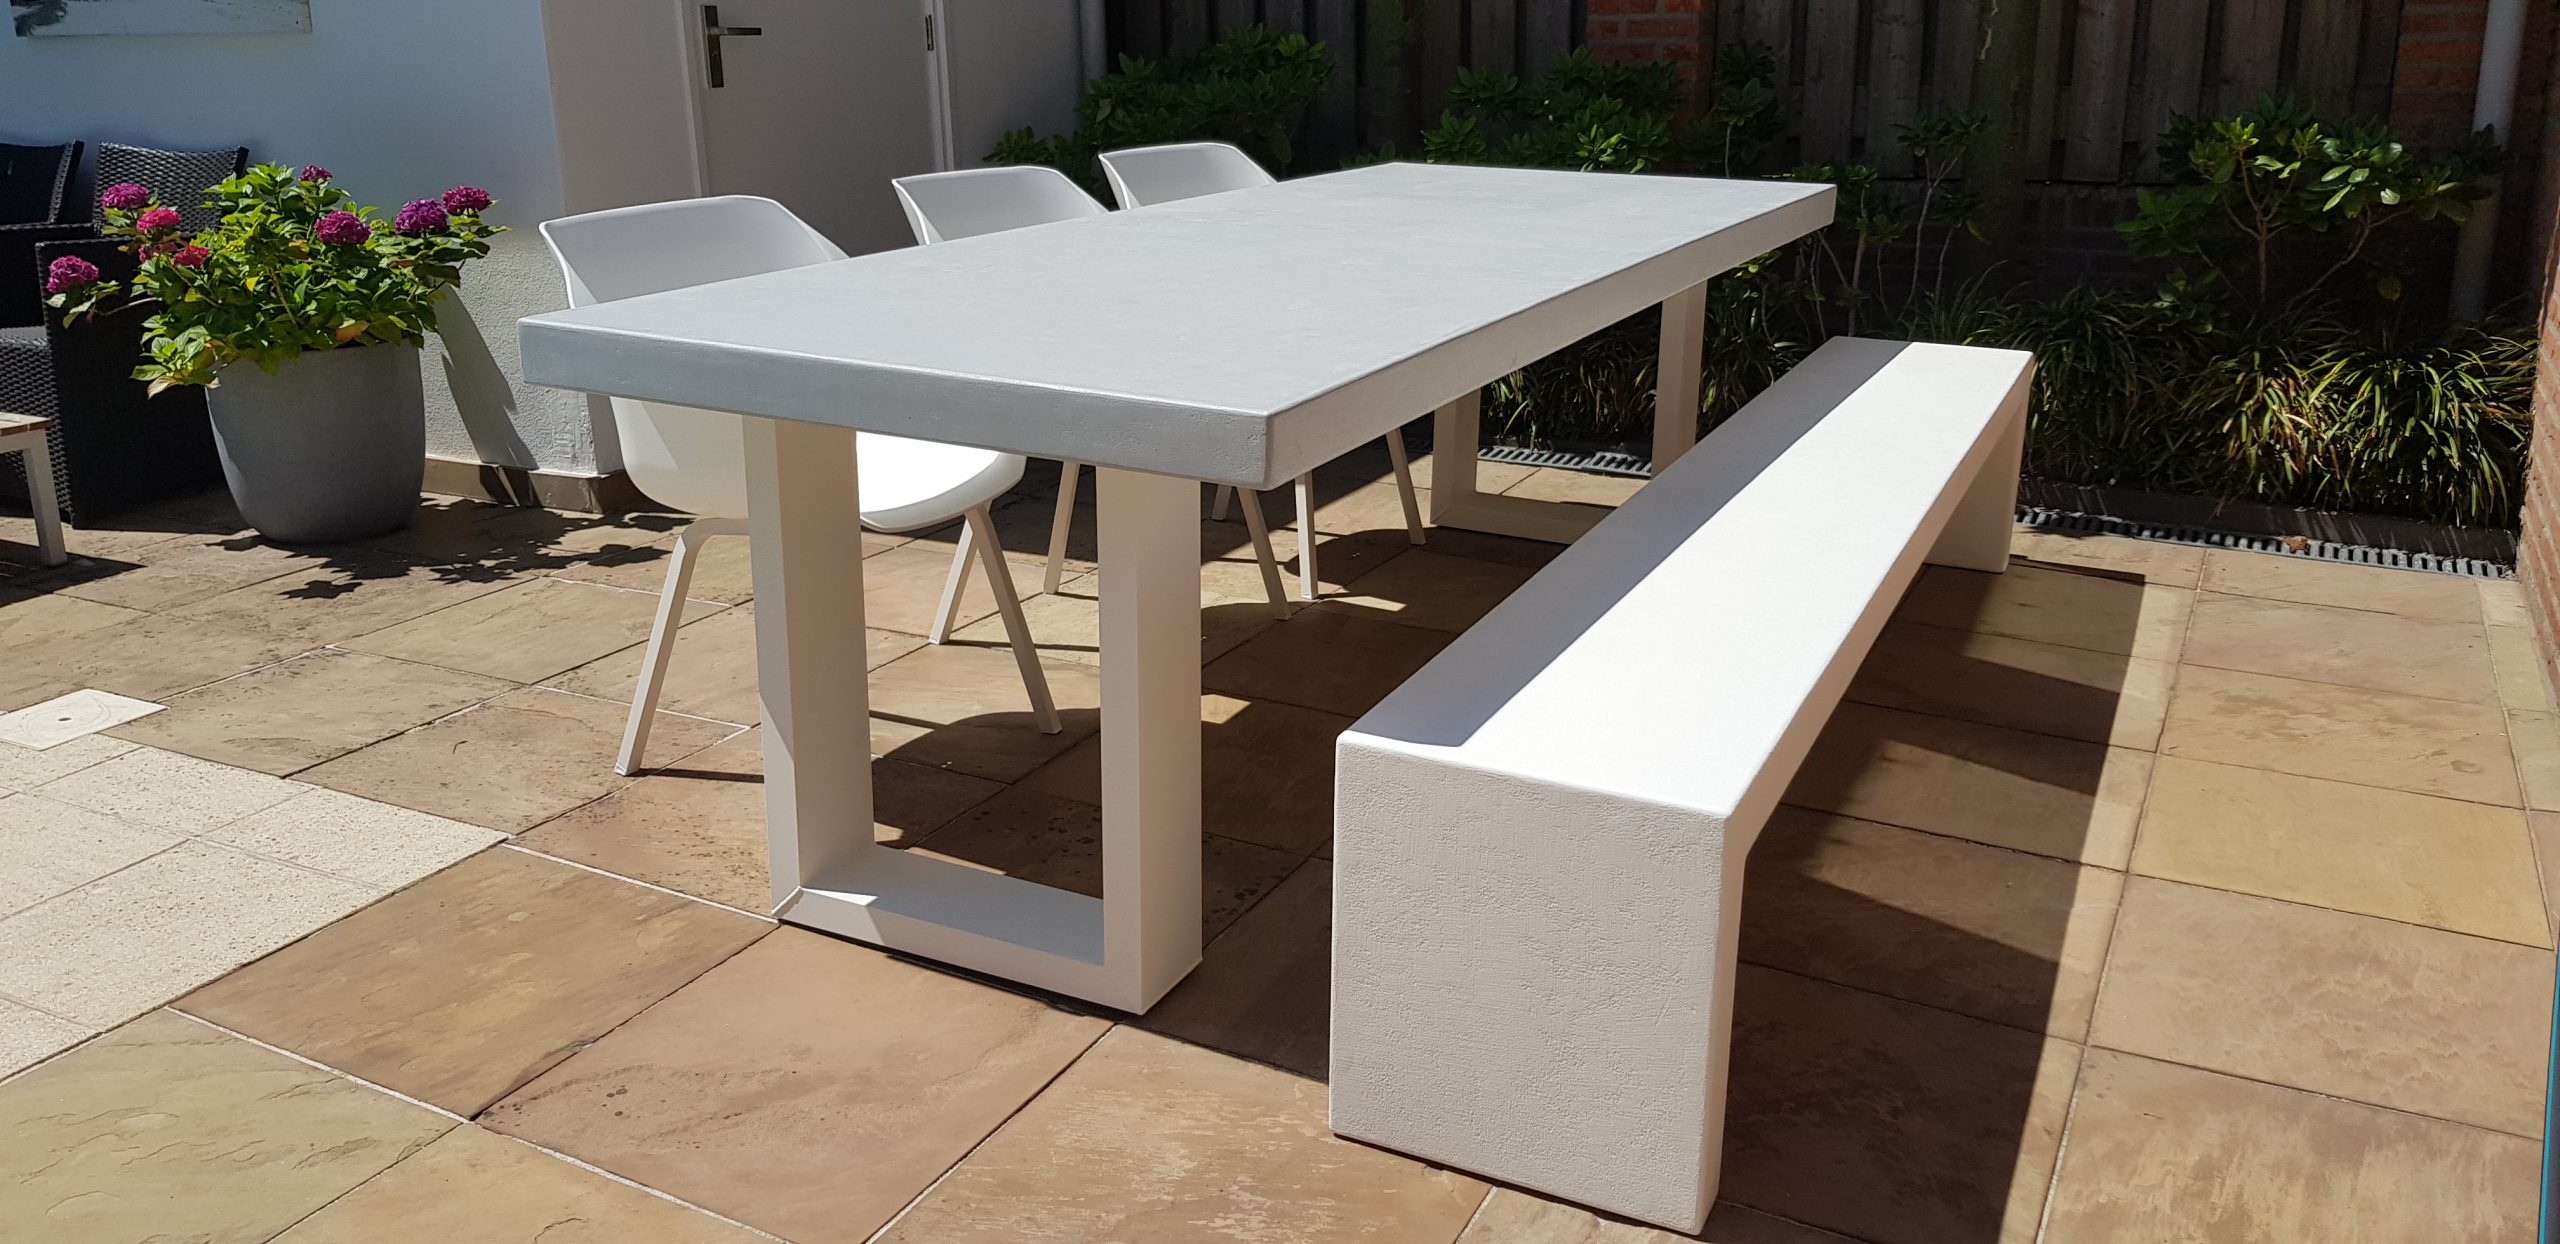 Betonlook tafel Base 1 met bank Booster